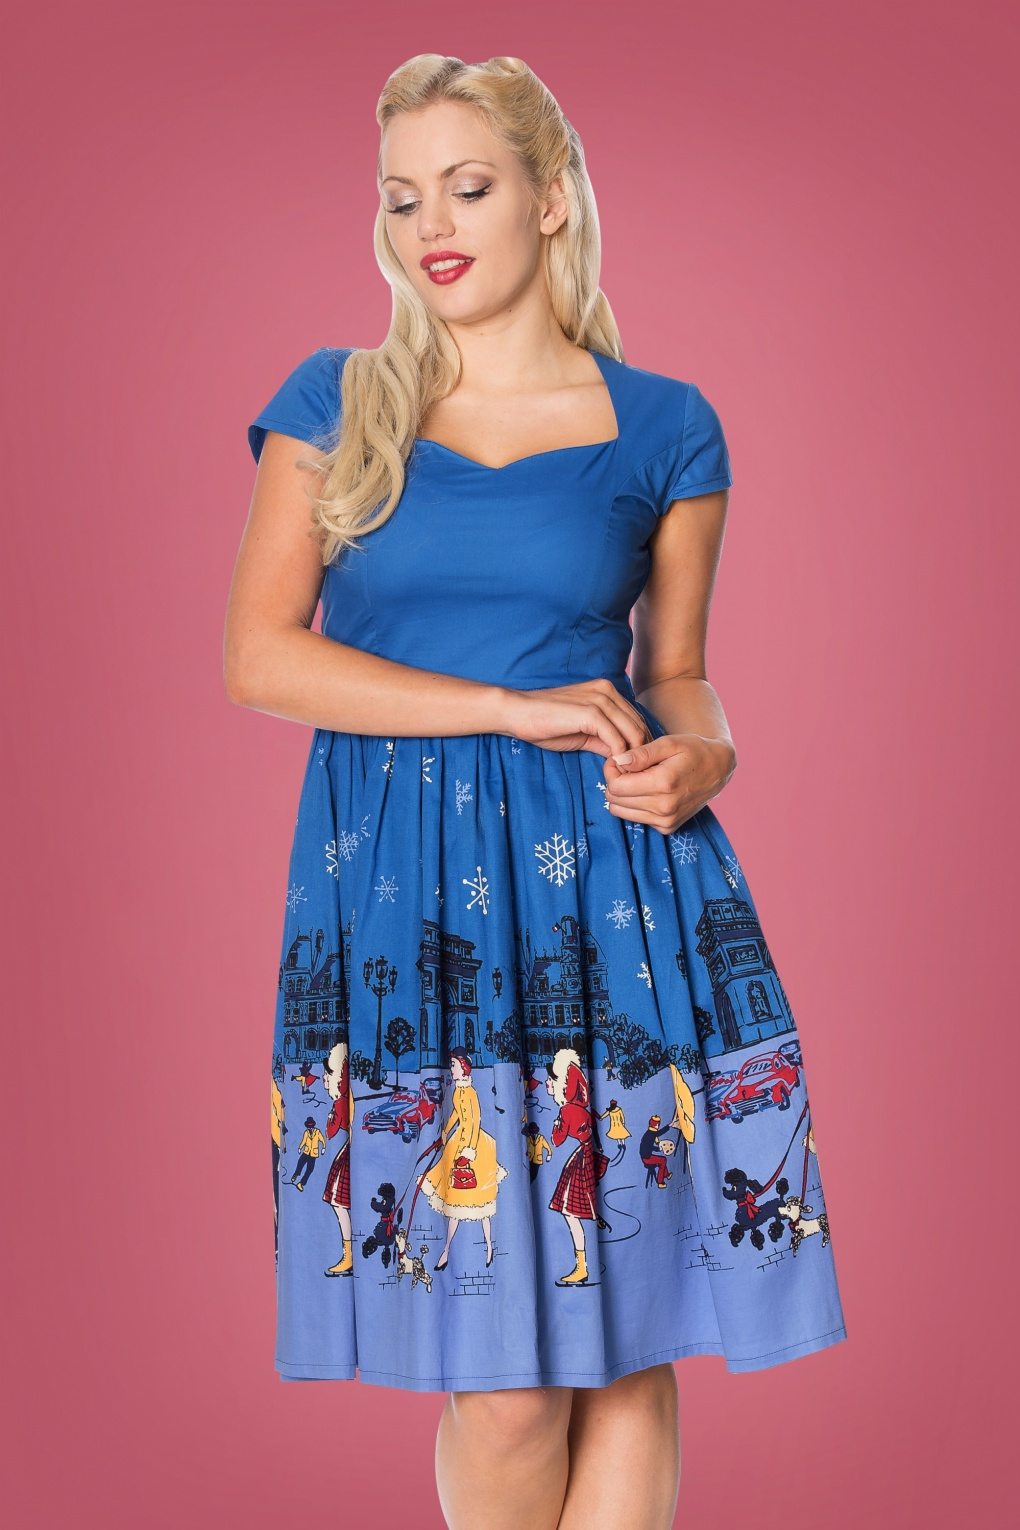 Vintage Christmas Gift Ideas for Women 50s Romance Lives Swing Dress in Blue £48.09 AT vintagedancer.com